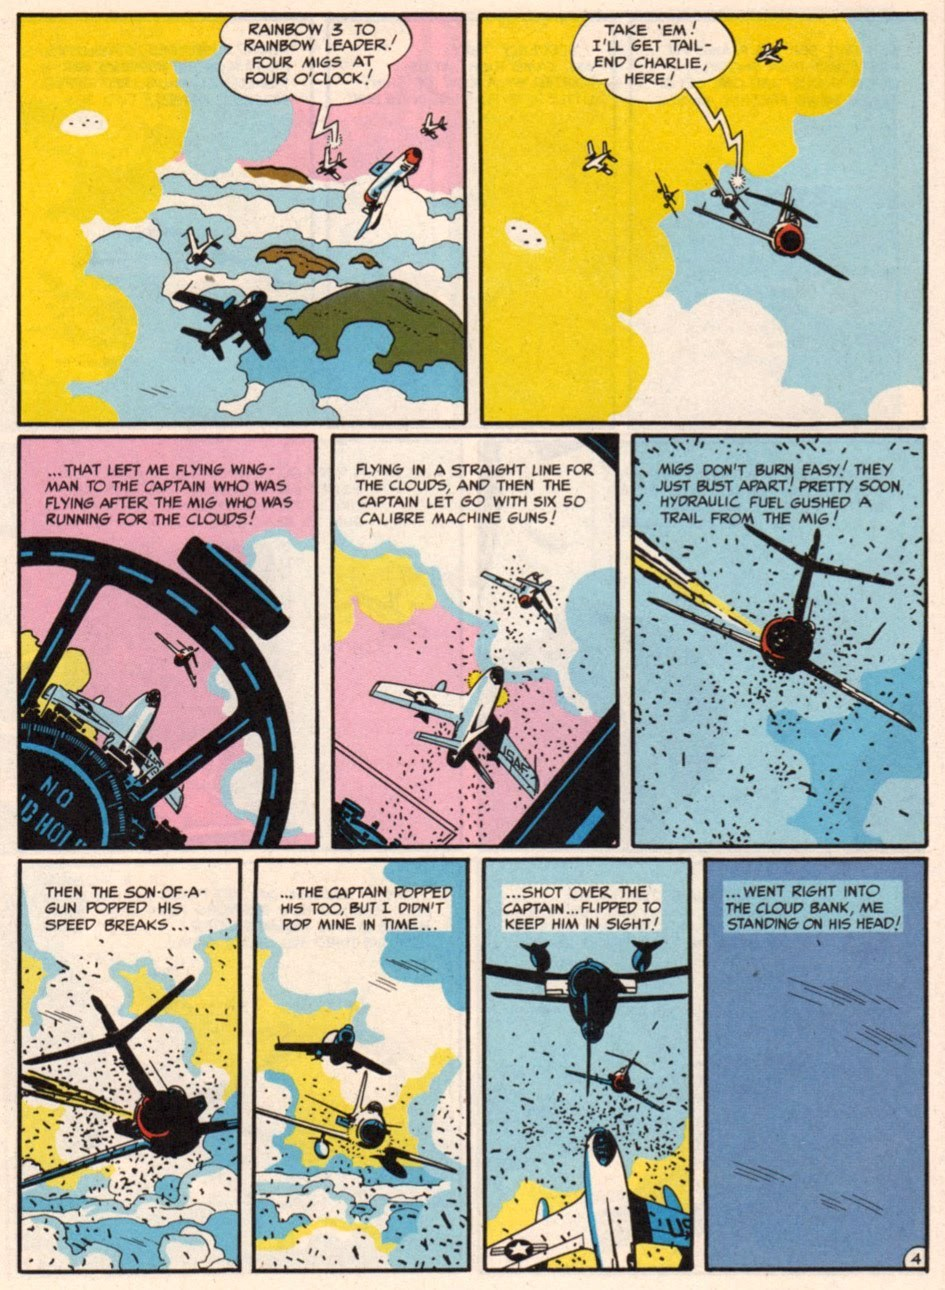 tothlove:  F86 Sabre Jet - Harvey Kurtzman and Alex Toth page 4